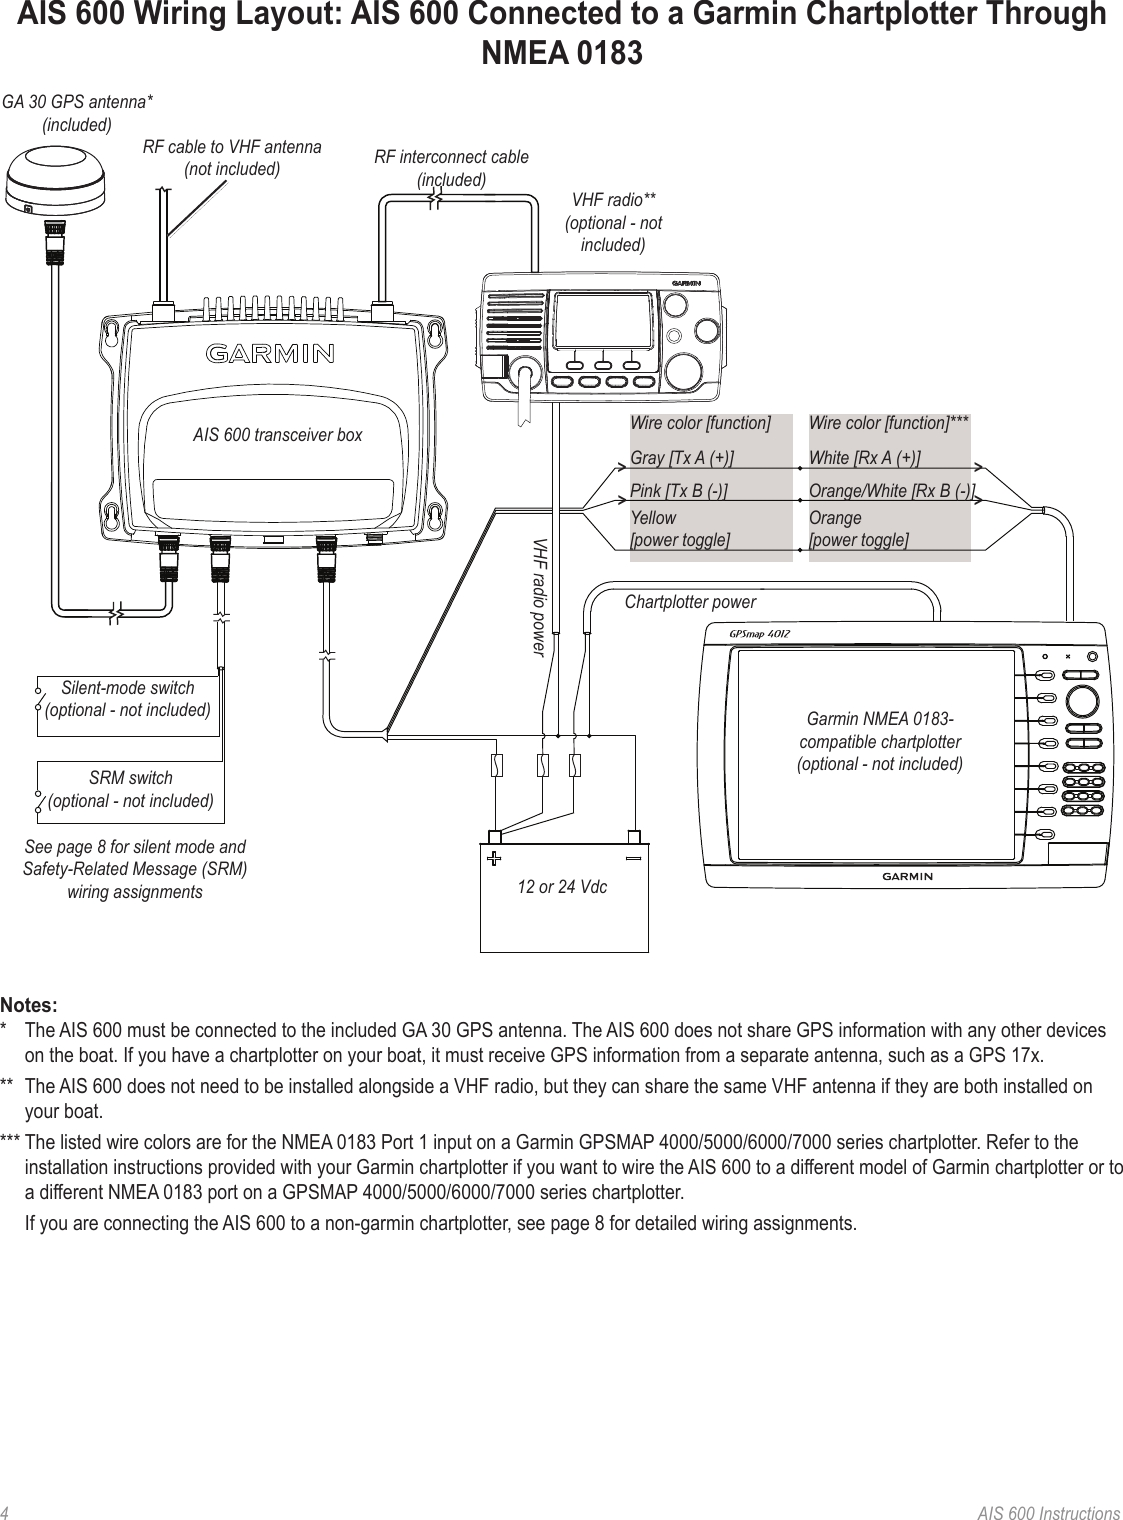 Garmin 441s Gps Wiring Diagram Libraries Antenna Diagramsnmea 2000 Free Wire